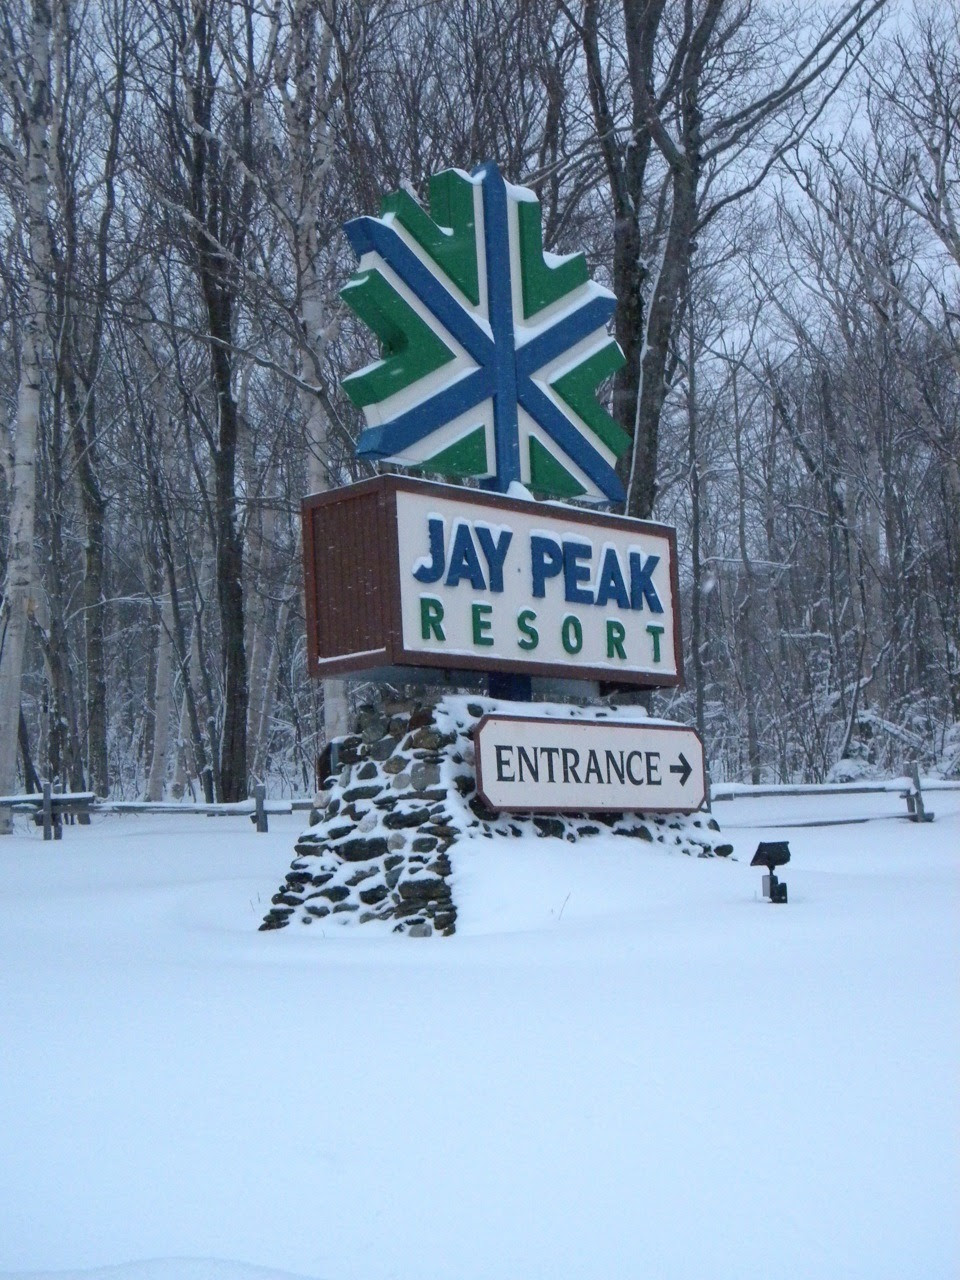 Cant wait to get back to Jay.